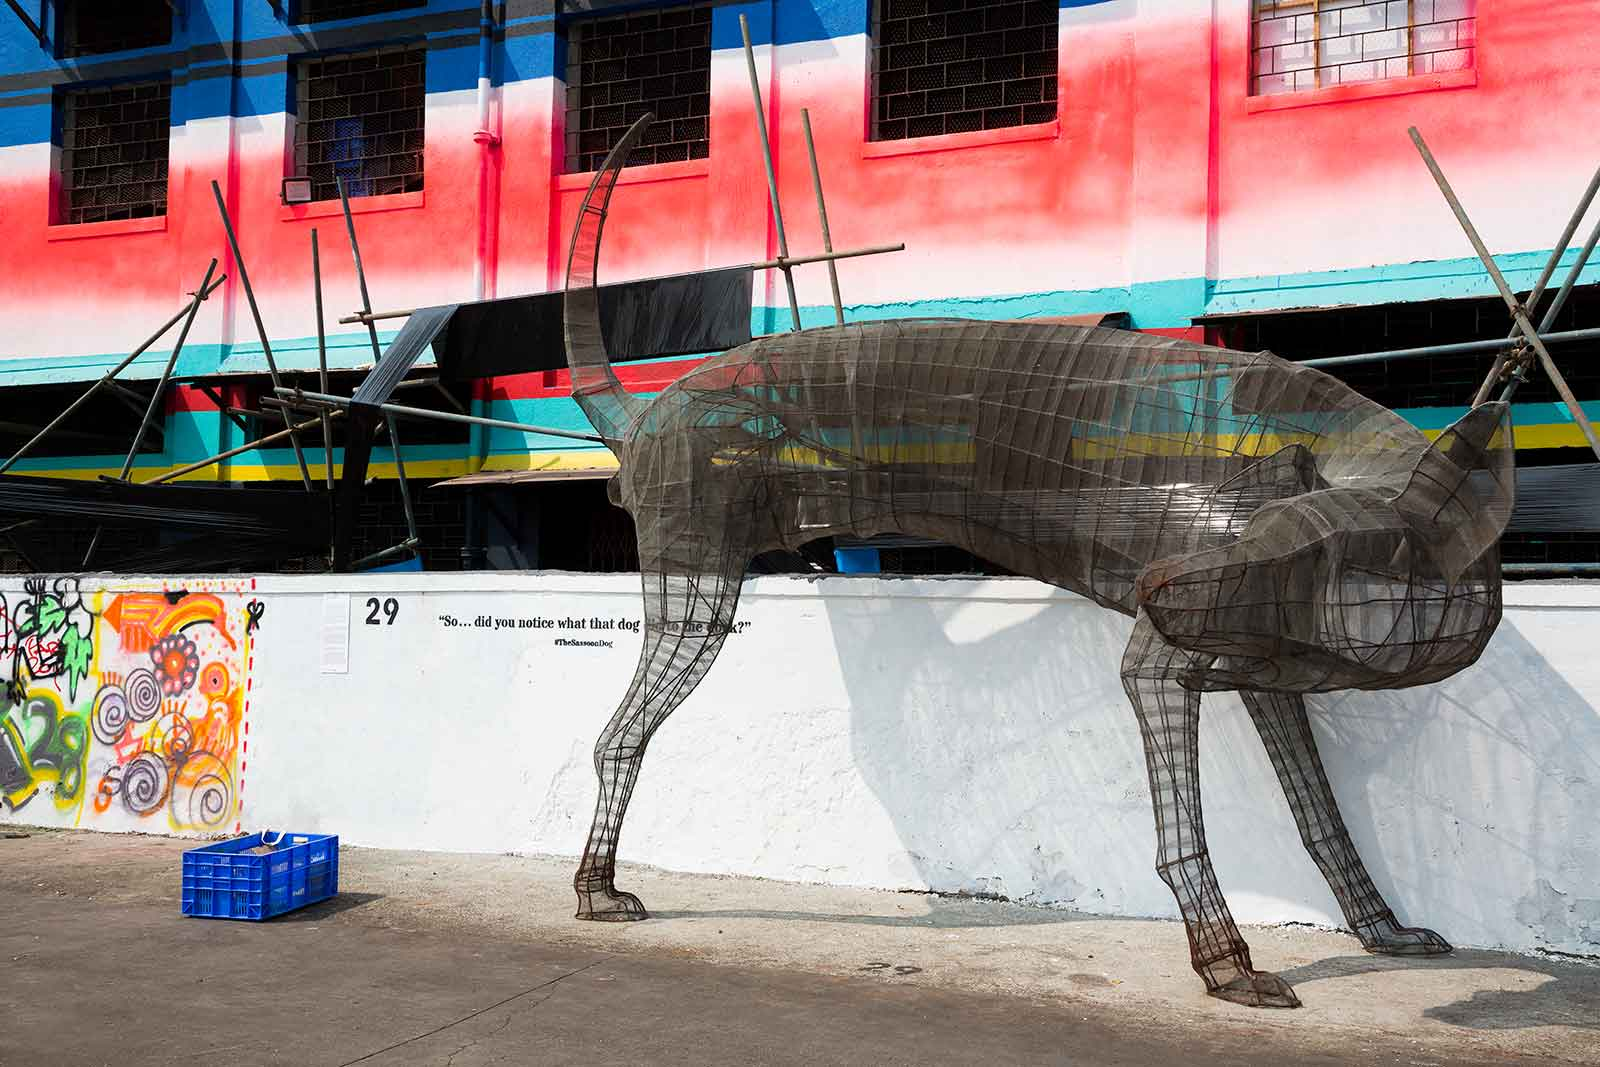 The Sassoon Dog is hard to miss when walking along the Sassoon Docks in Mumbai.